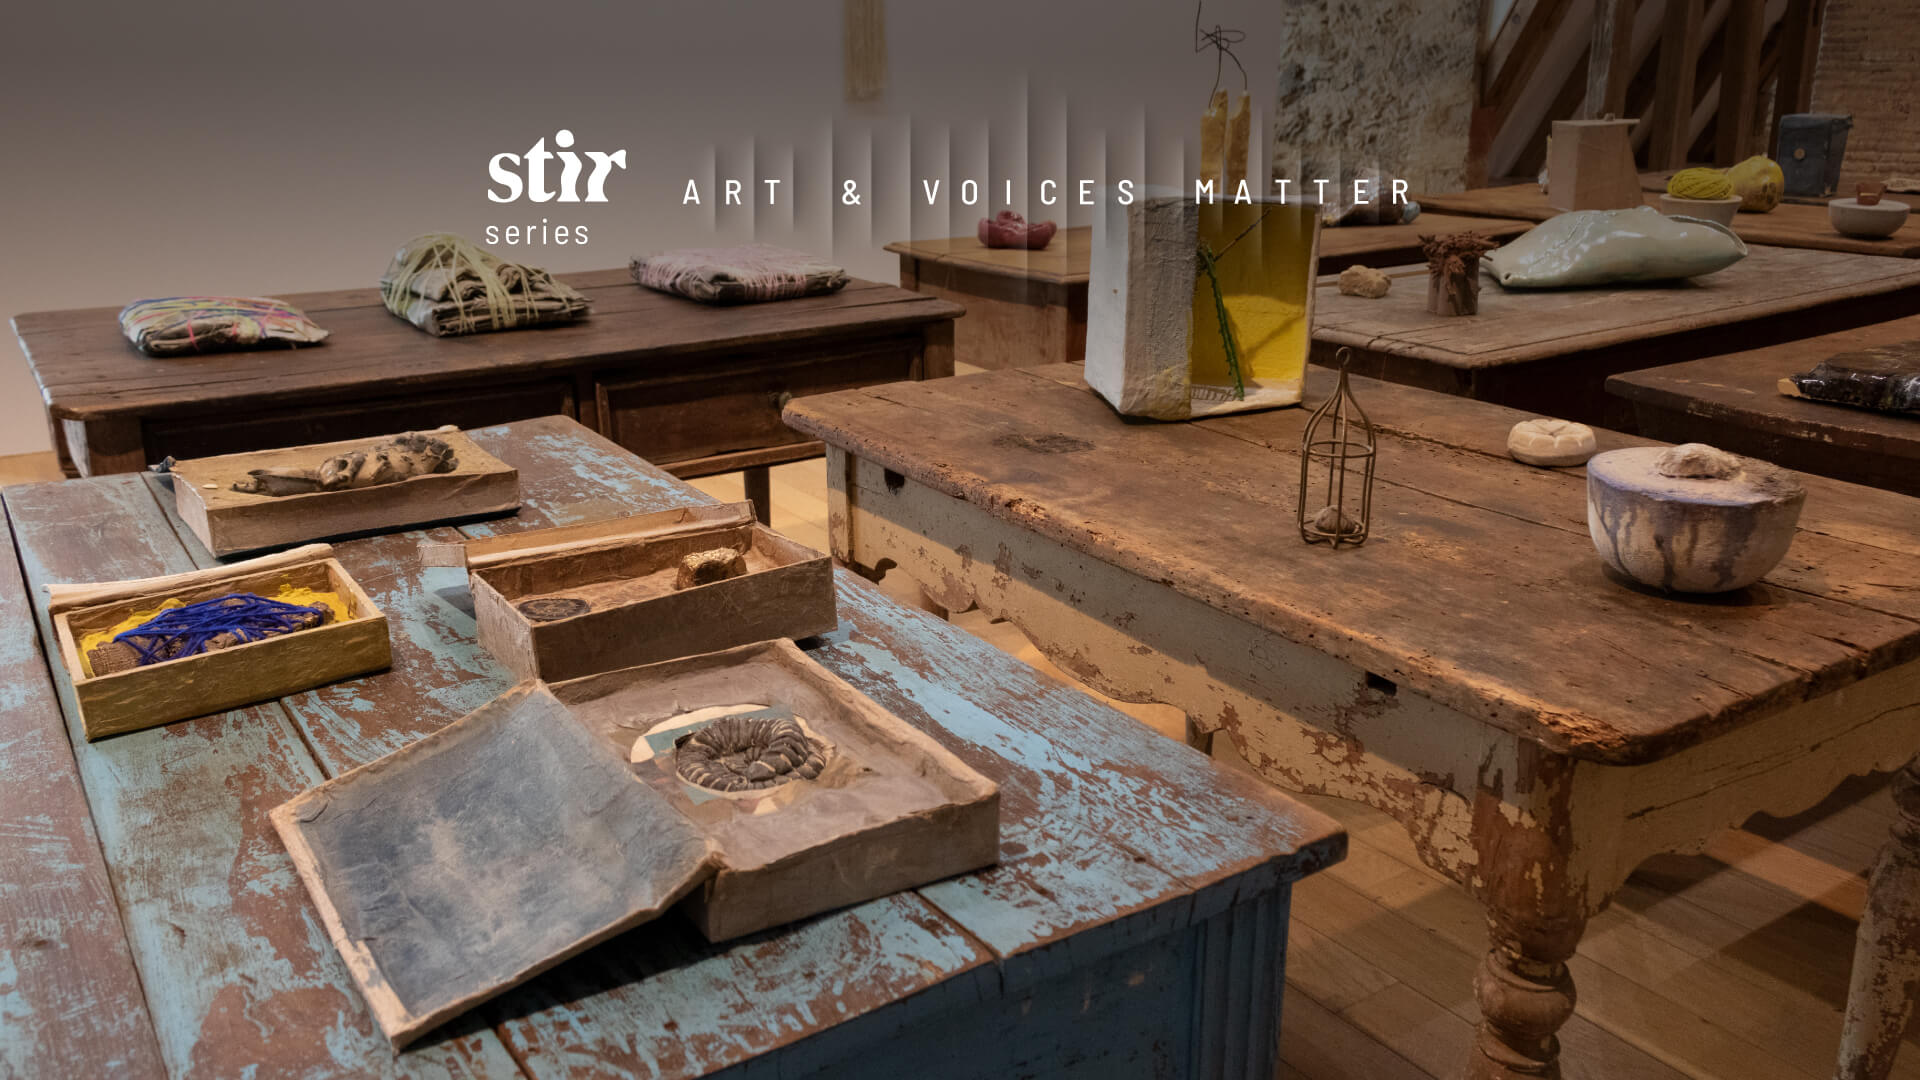 Art & Voices Matter: Morad Montazami sifts through complexity of Southern Modernism